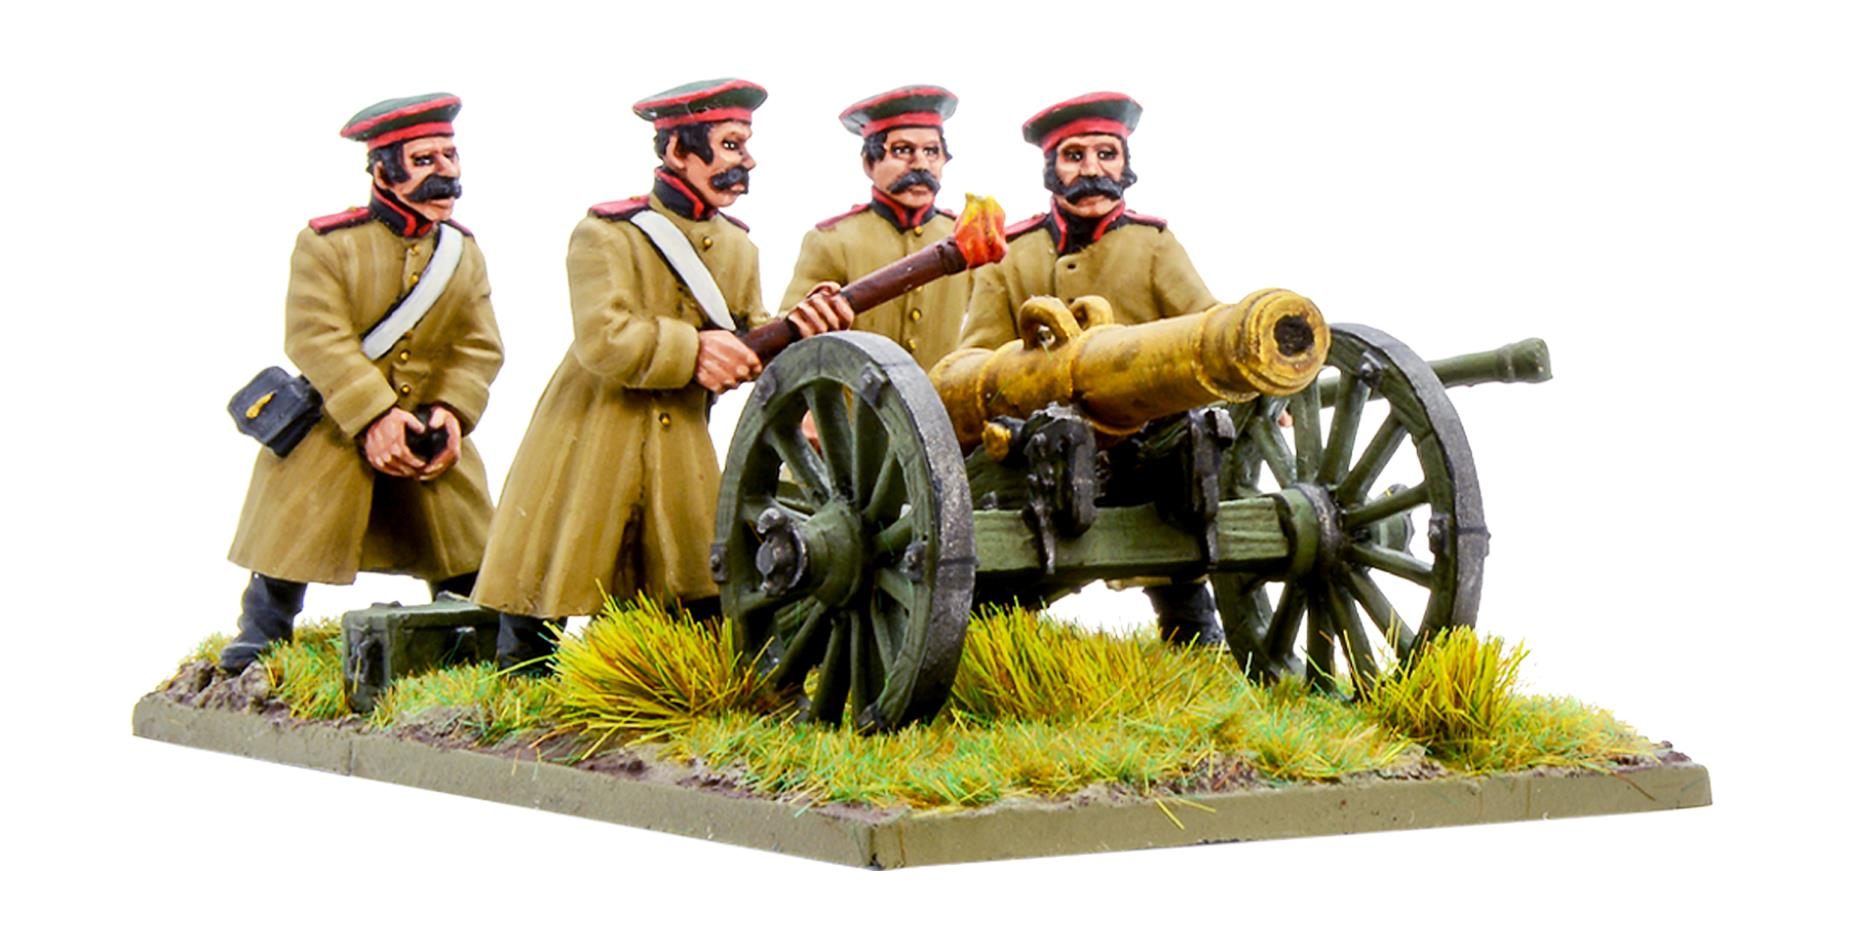 Crimean War Russian Foot Artillery with 12-pdr Cannon